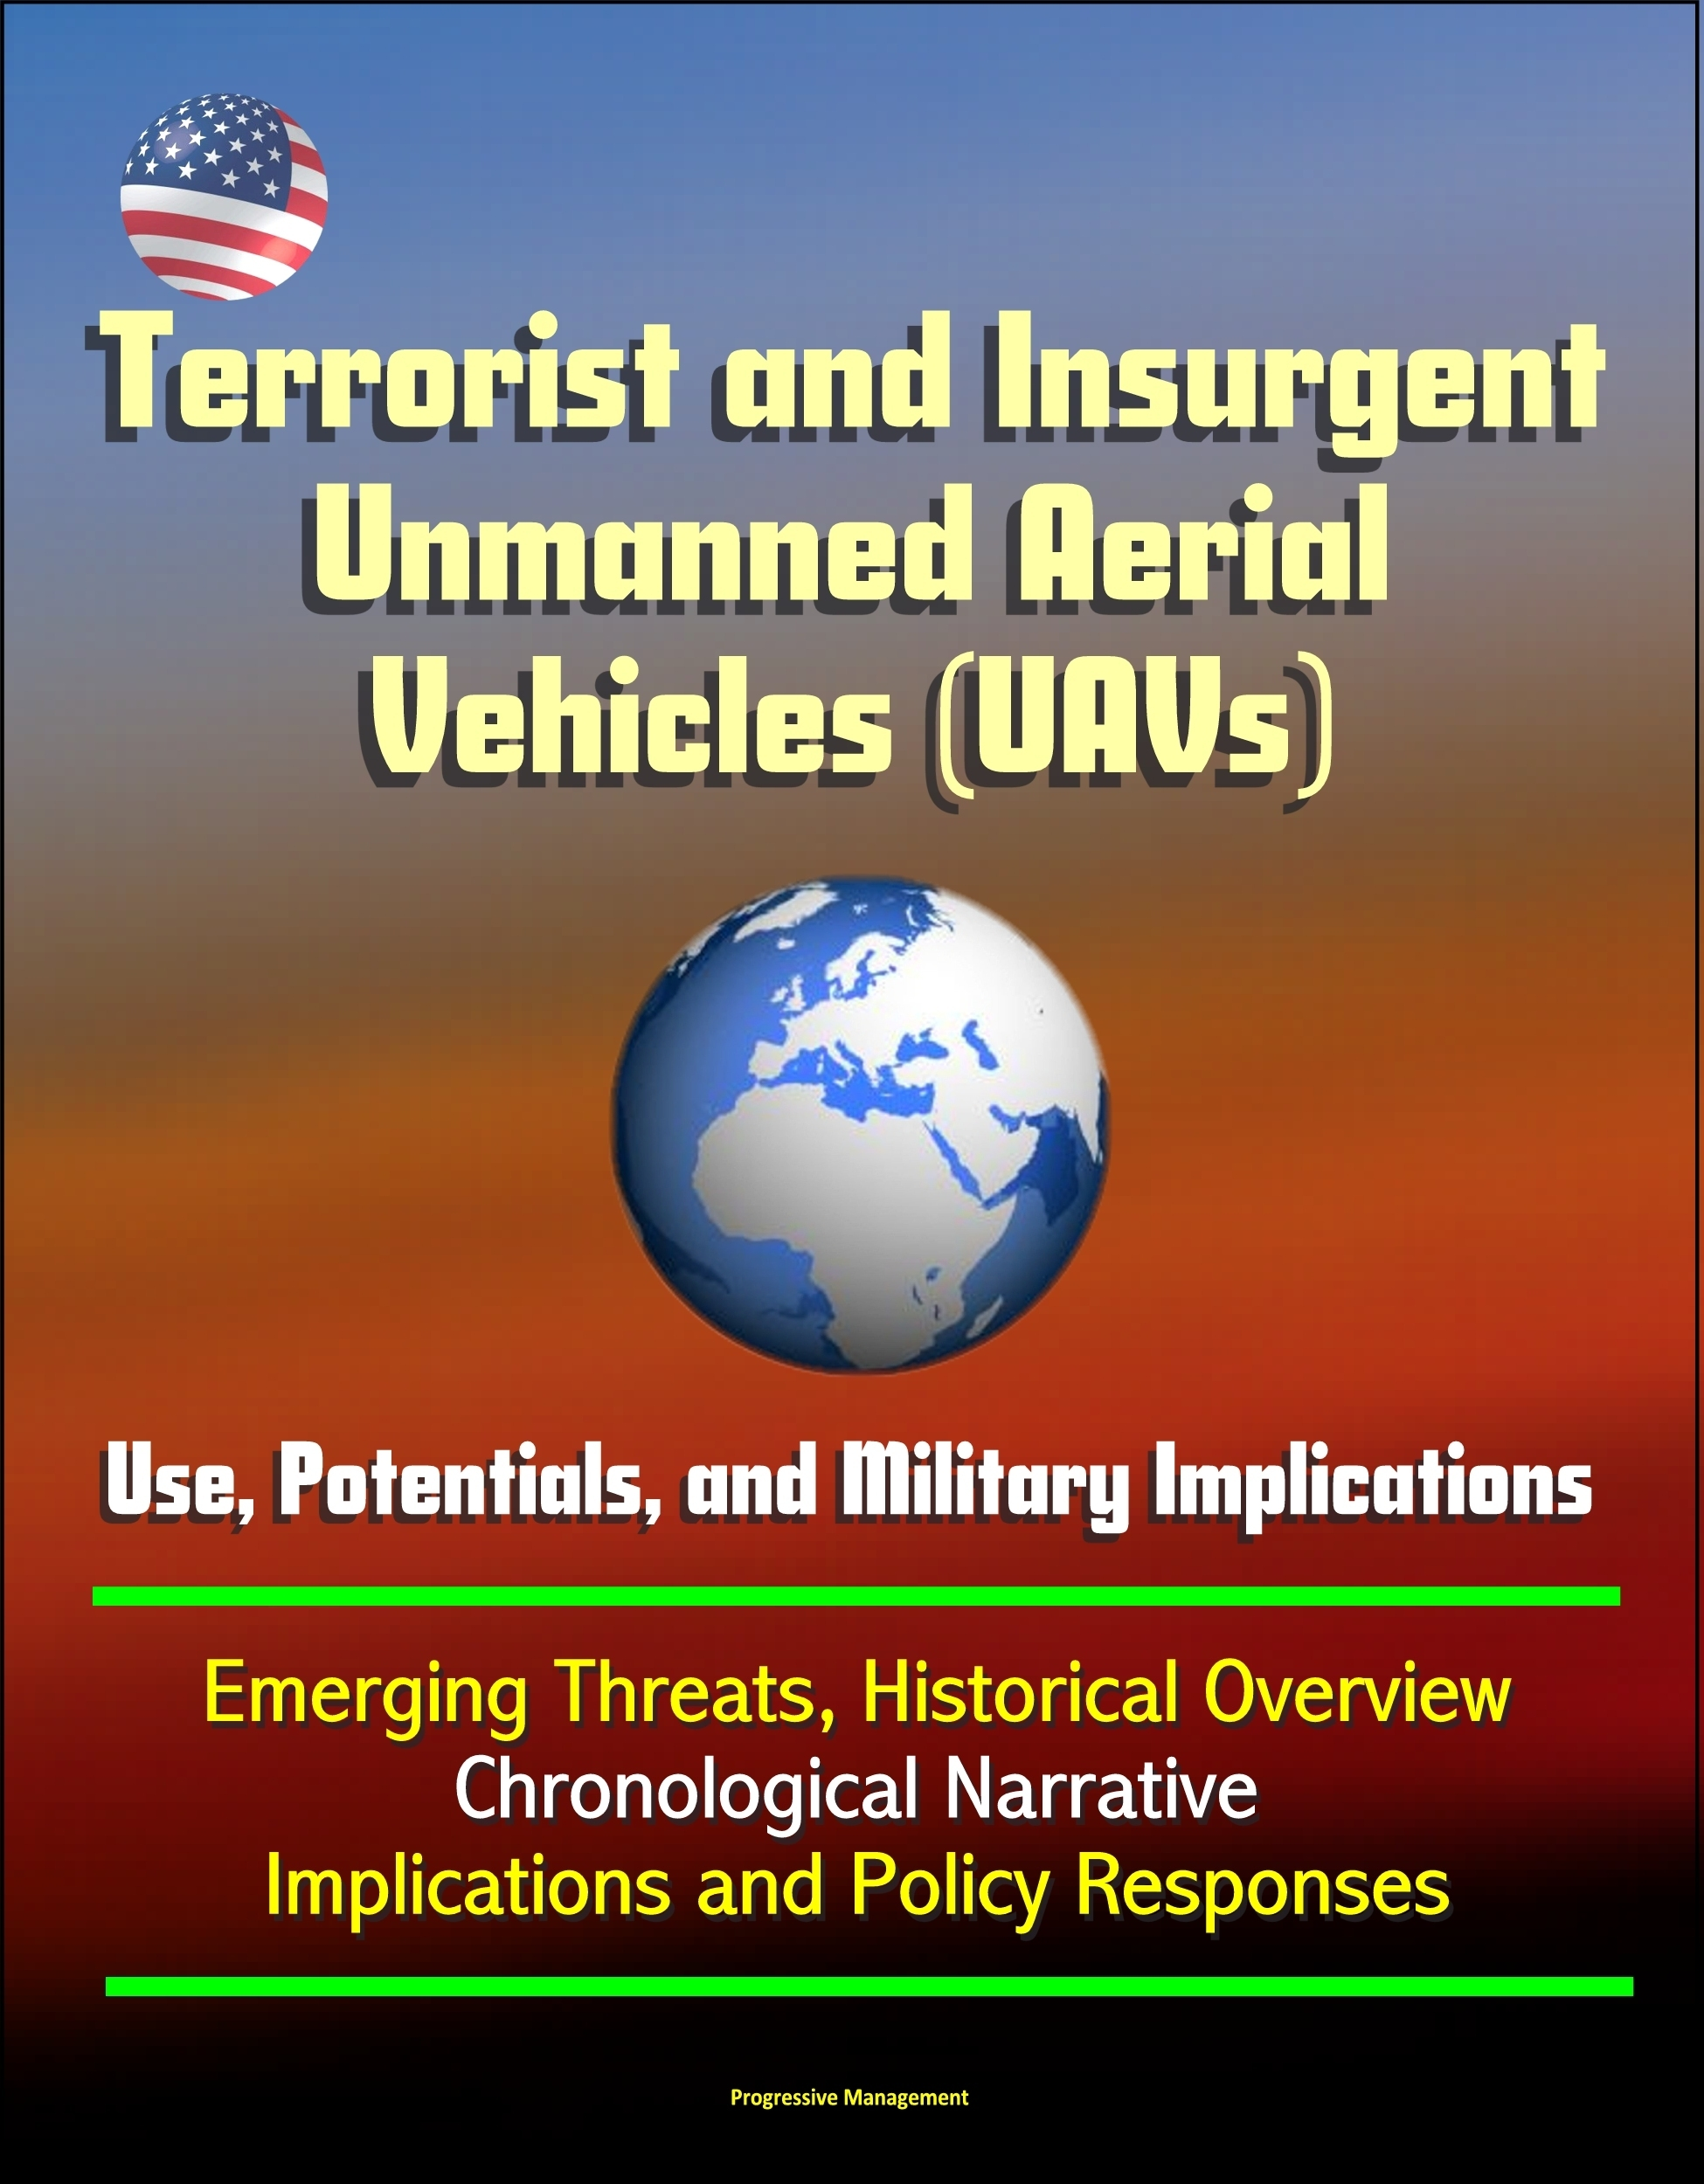 Terrorist and Insurgent Unmanned Aerial Vehicles (UAVs): Use, Potentials, and Military Implications - Emerging Threats, Historical Overview, Chronological Narrative, Implications and Policy Responses Progressive Management